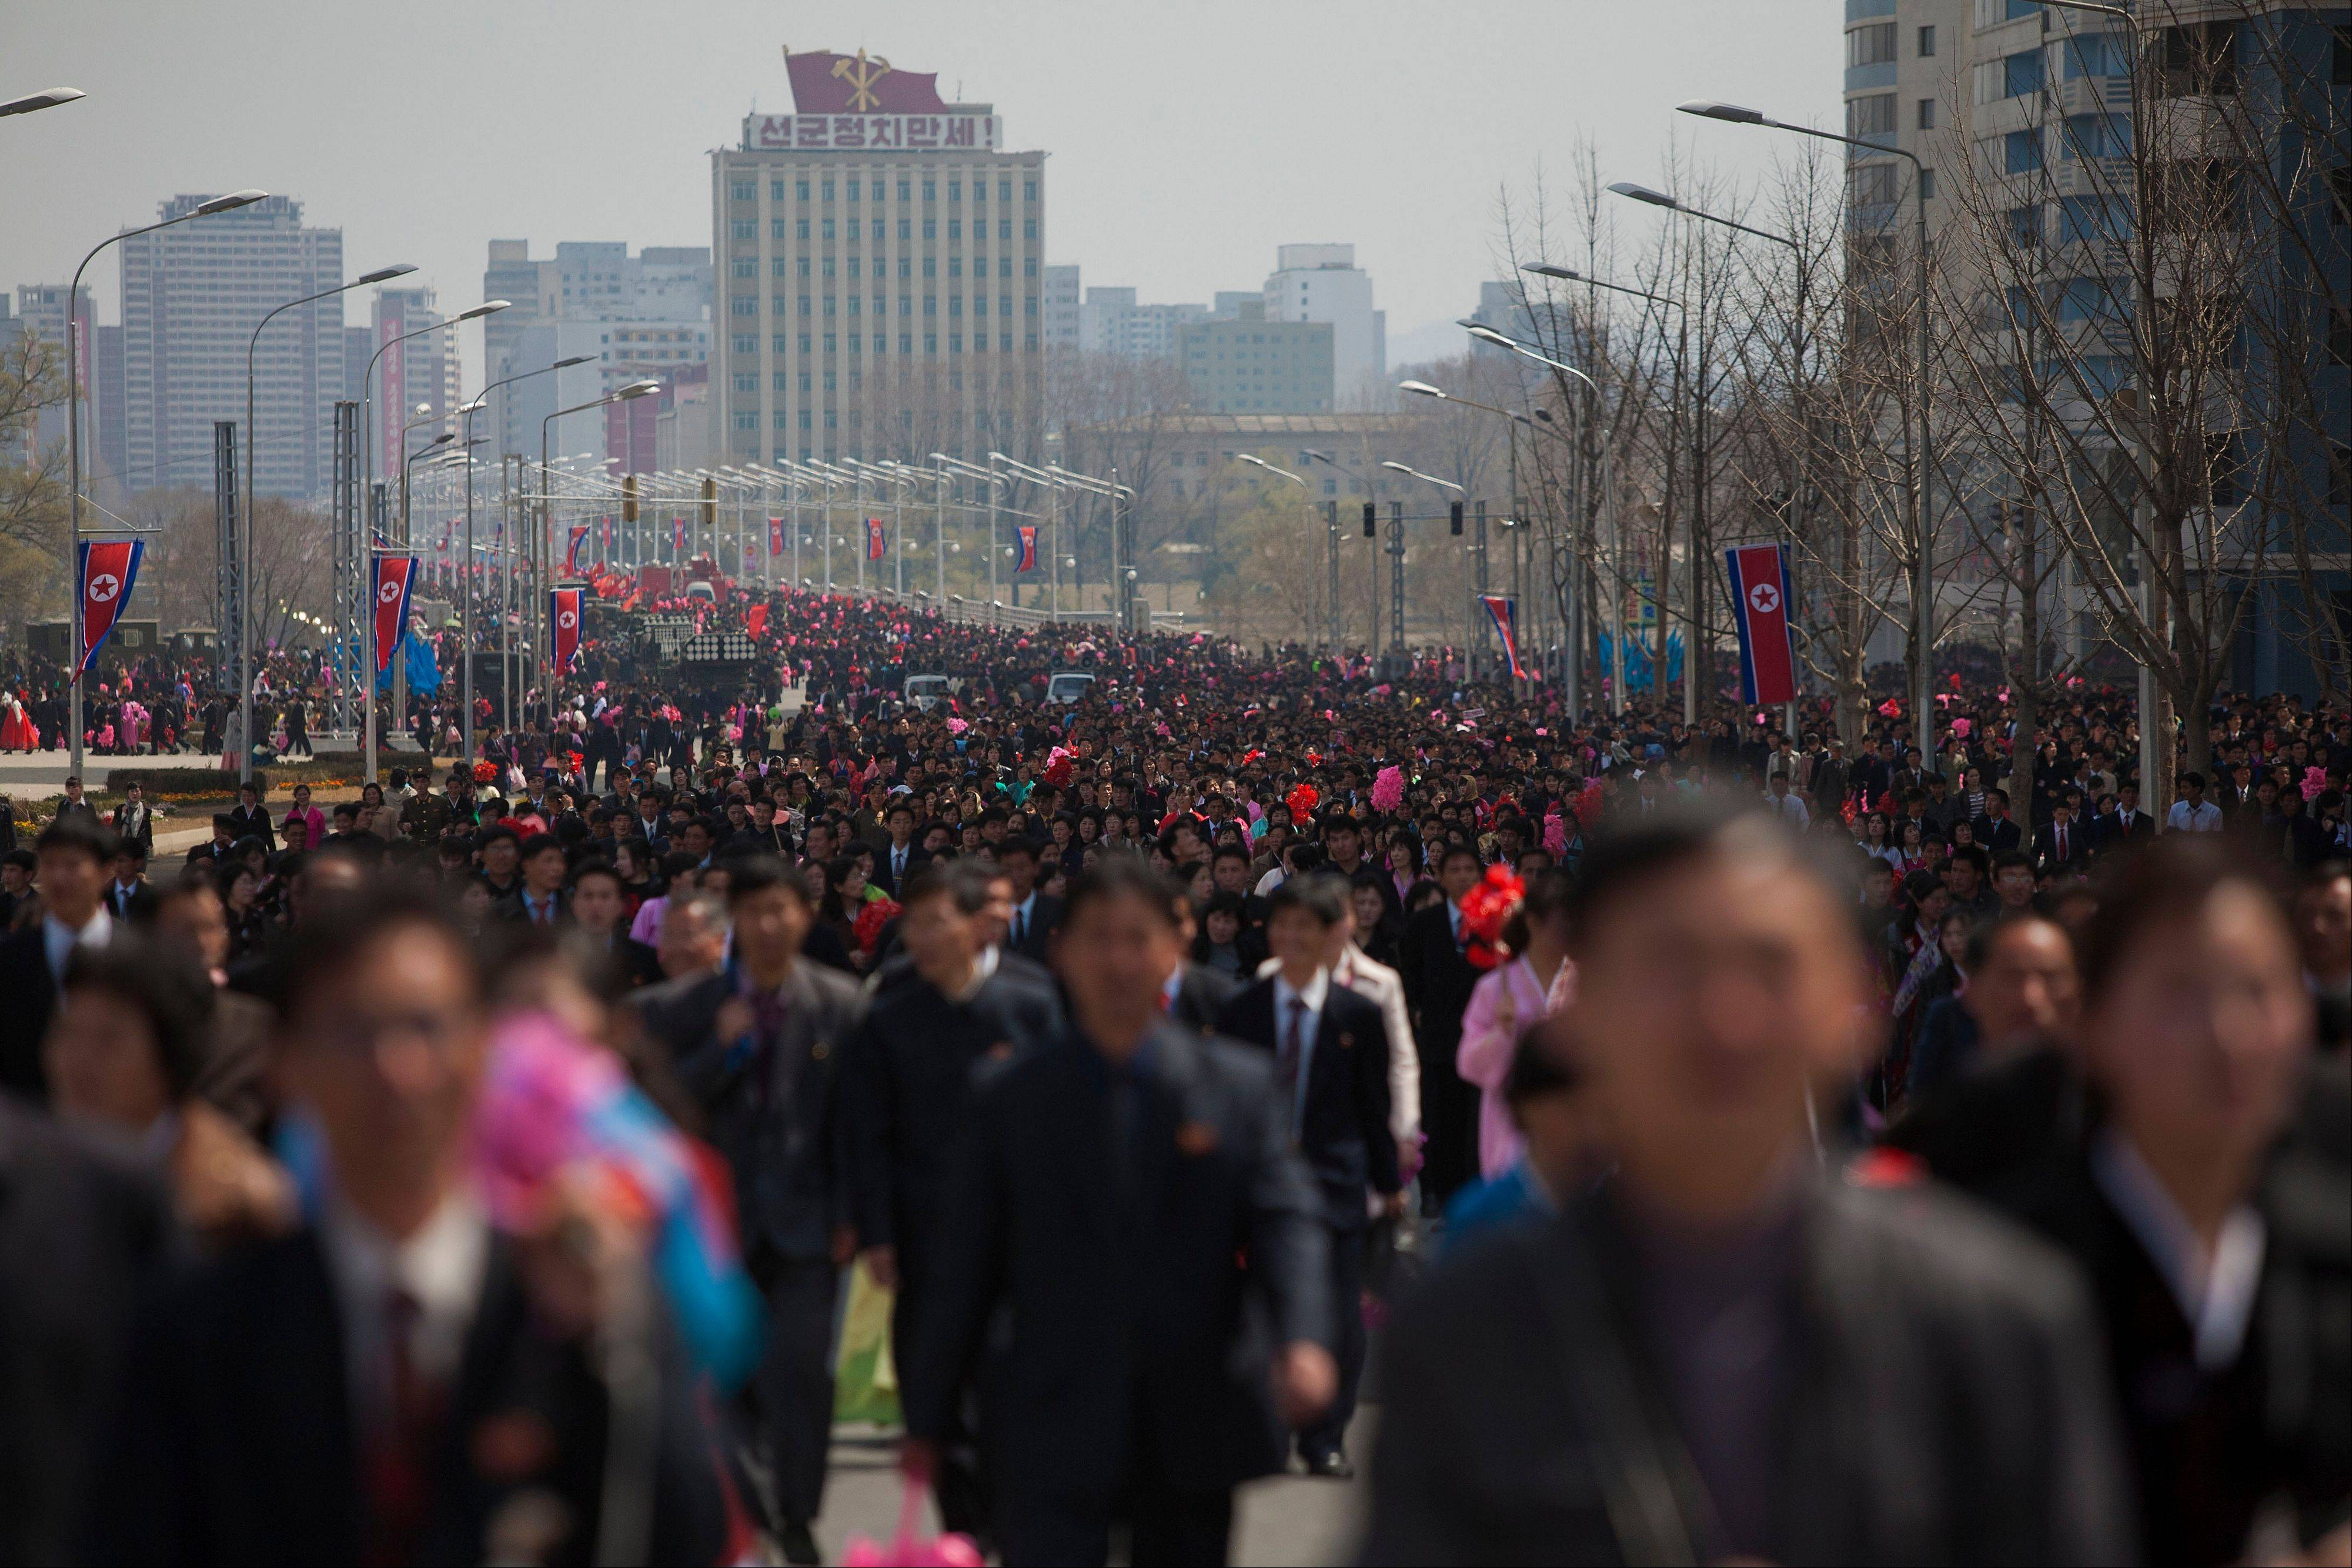 People walk down a street after a large military parade in Pyongyang's Kim Il Sung Square celebrating 100 years since the birth of the late North Korean founder Kim Il Sung.